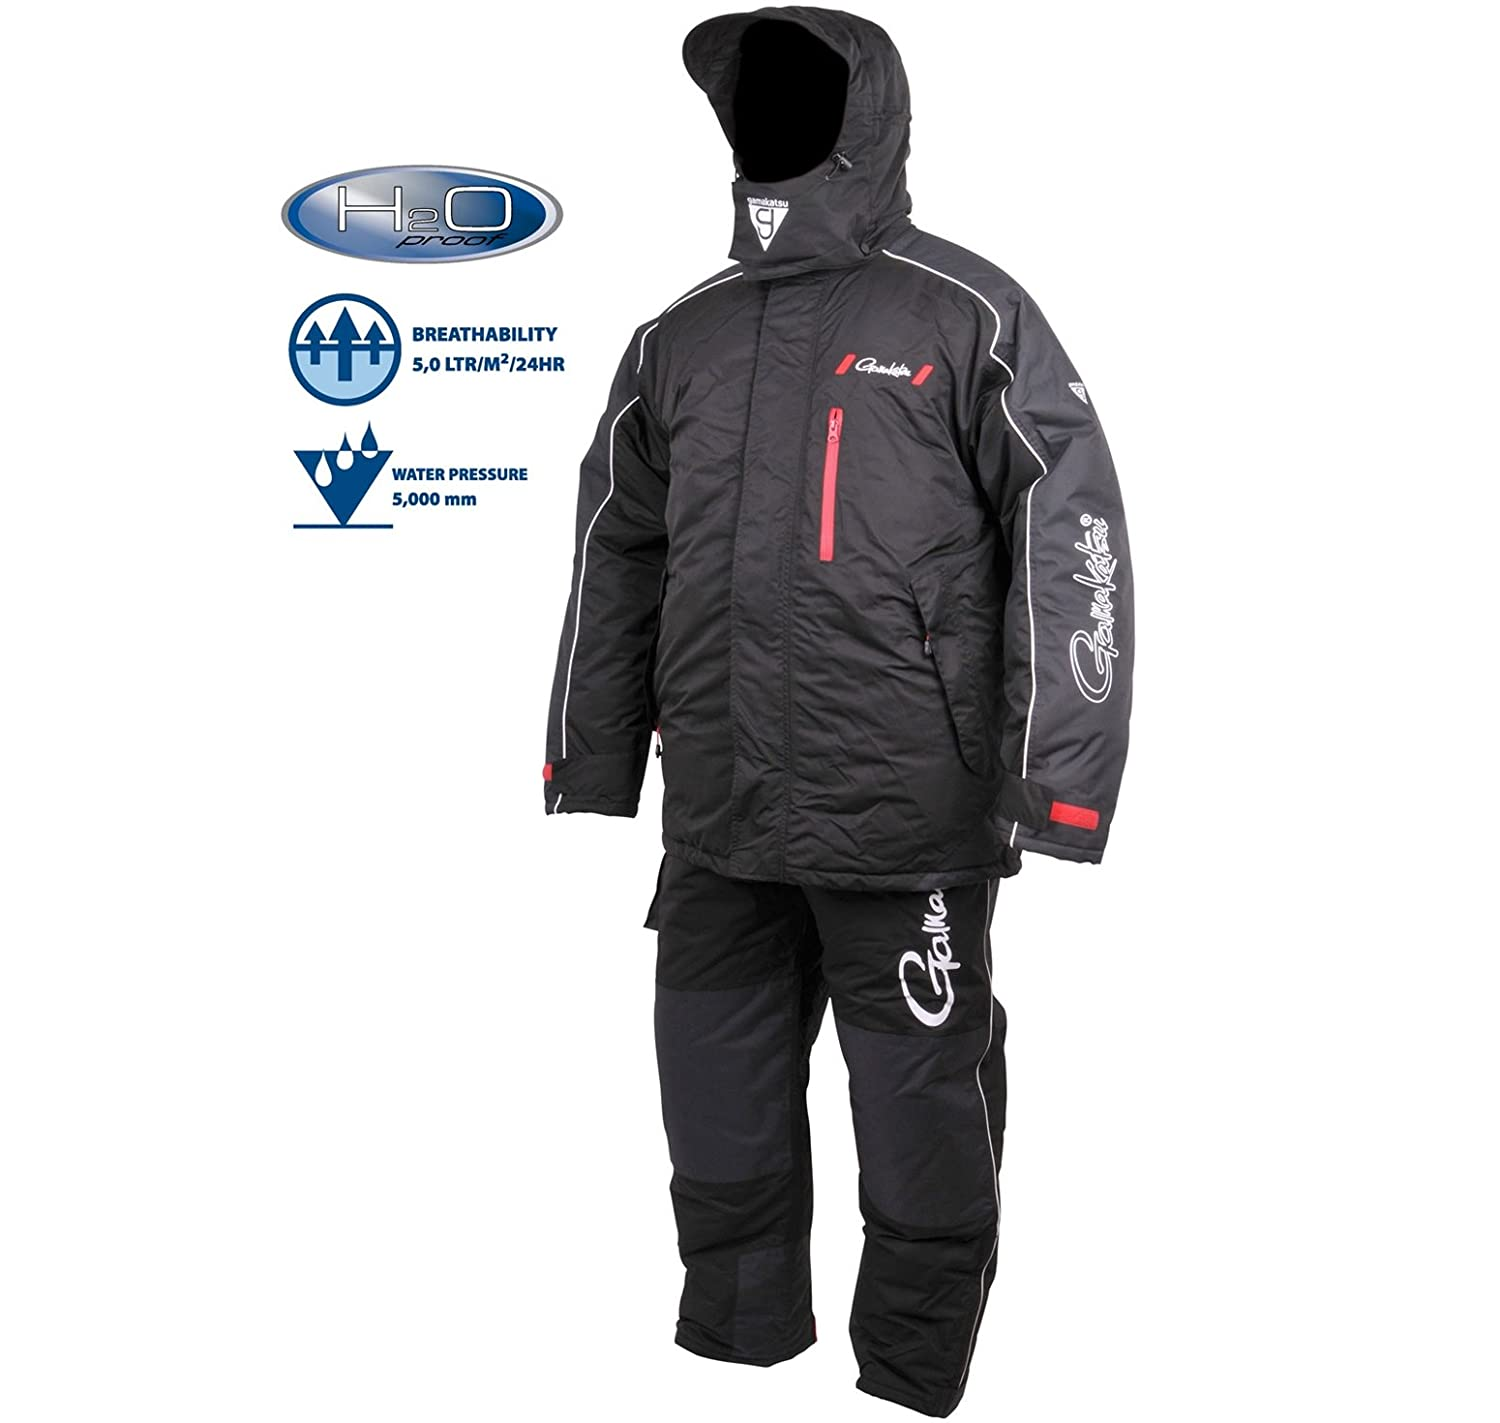 Amazon.com: gamaktsu Hyper traje térmico: Sports & Outdoors